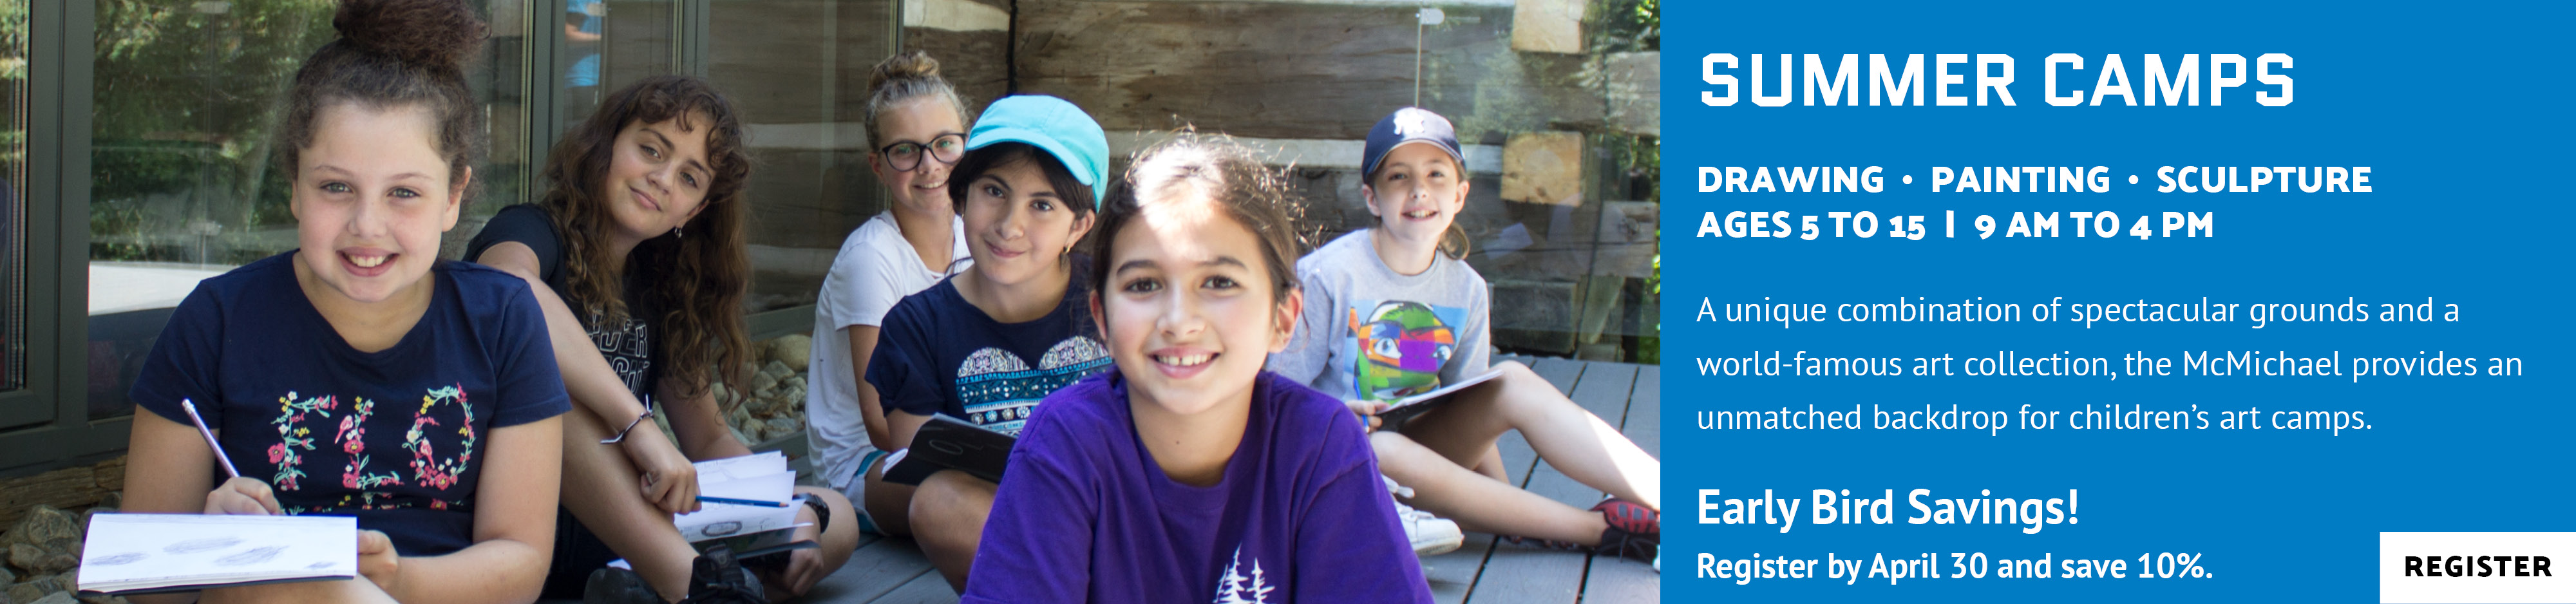 Summer Camps for Ages 5 to 15